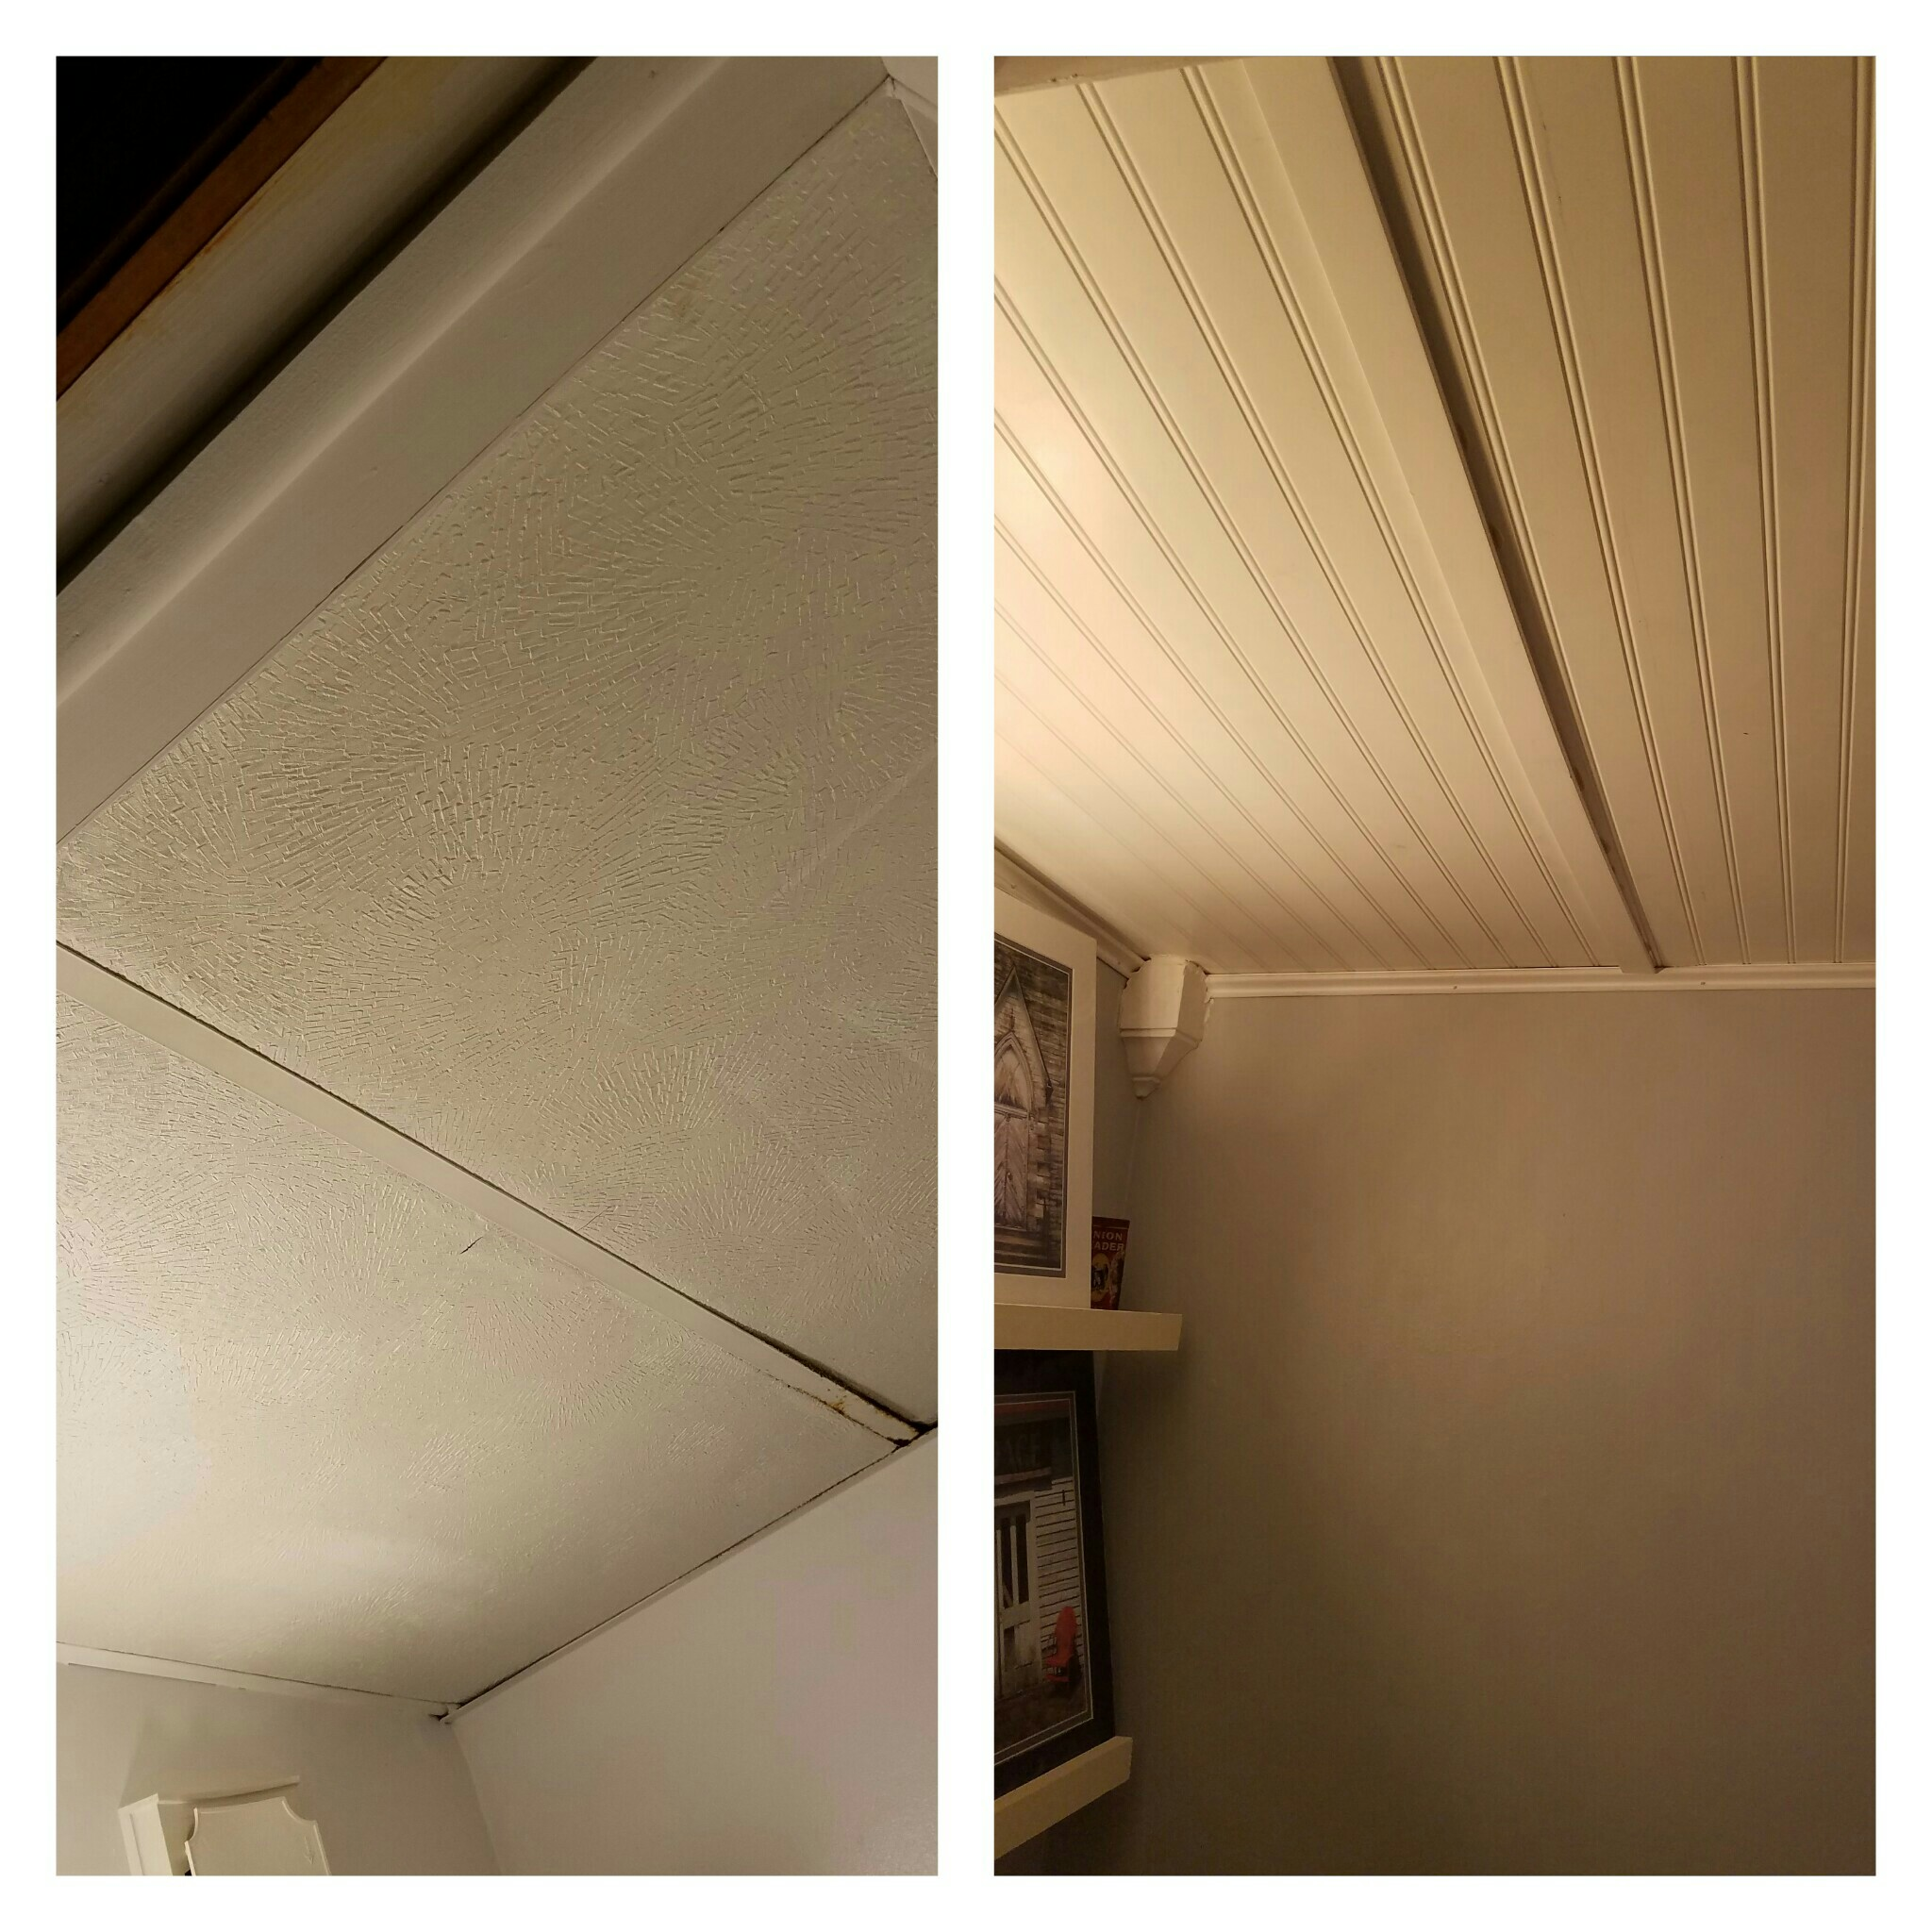 Then, it was straight to the top.  A two tile dropped ceiling had seen better days.  Wainscoting was used as a new ceiling treatment, along with trim and corner pieces.  This added a certain coziness to the room.